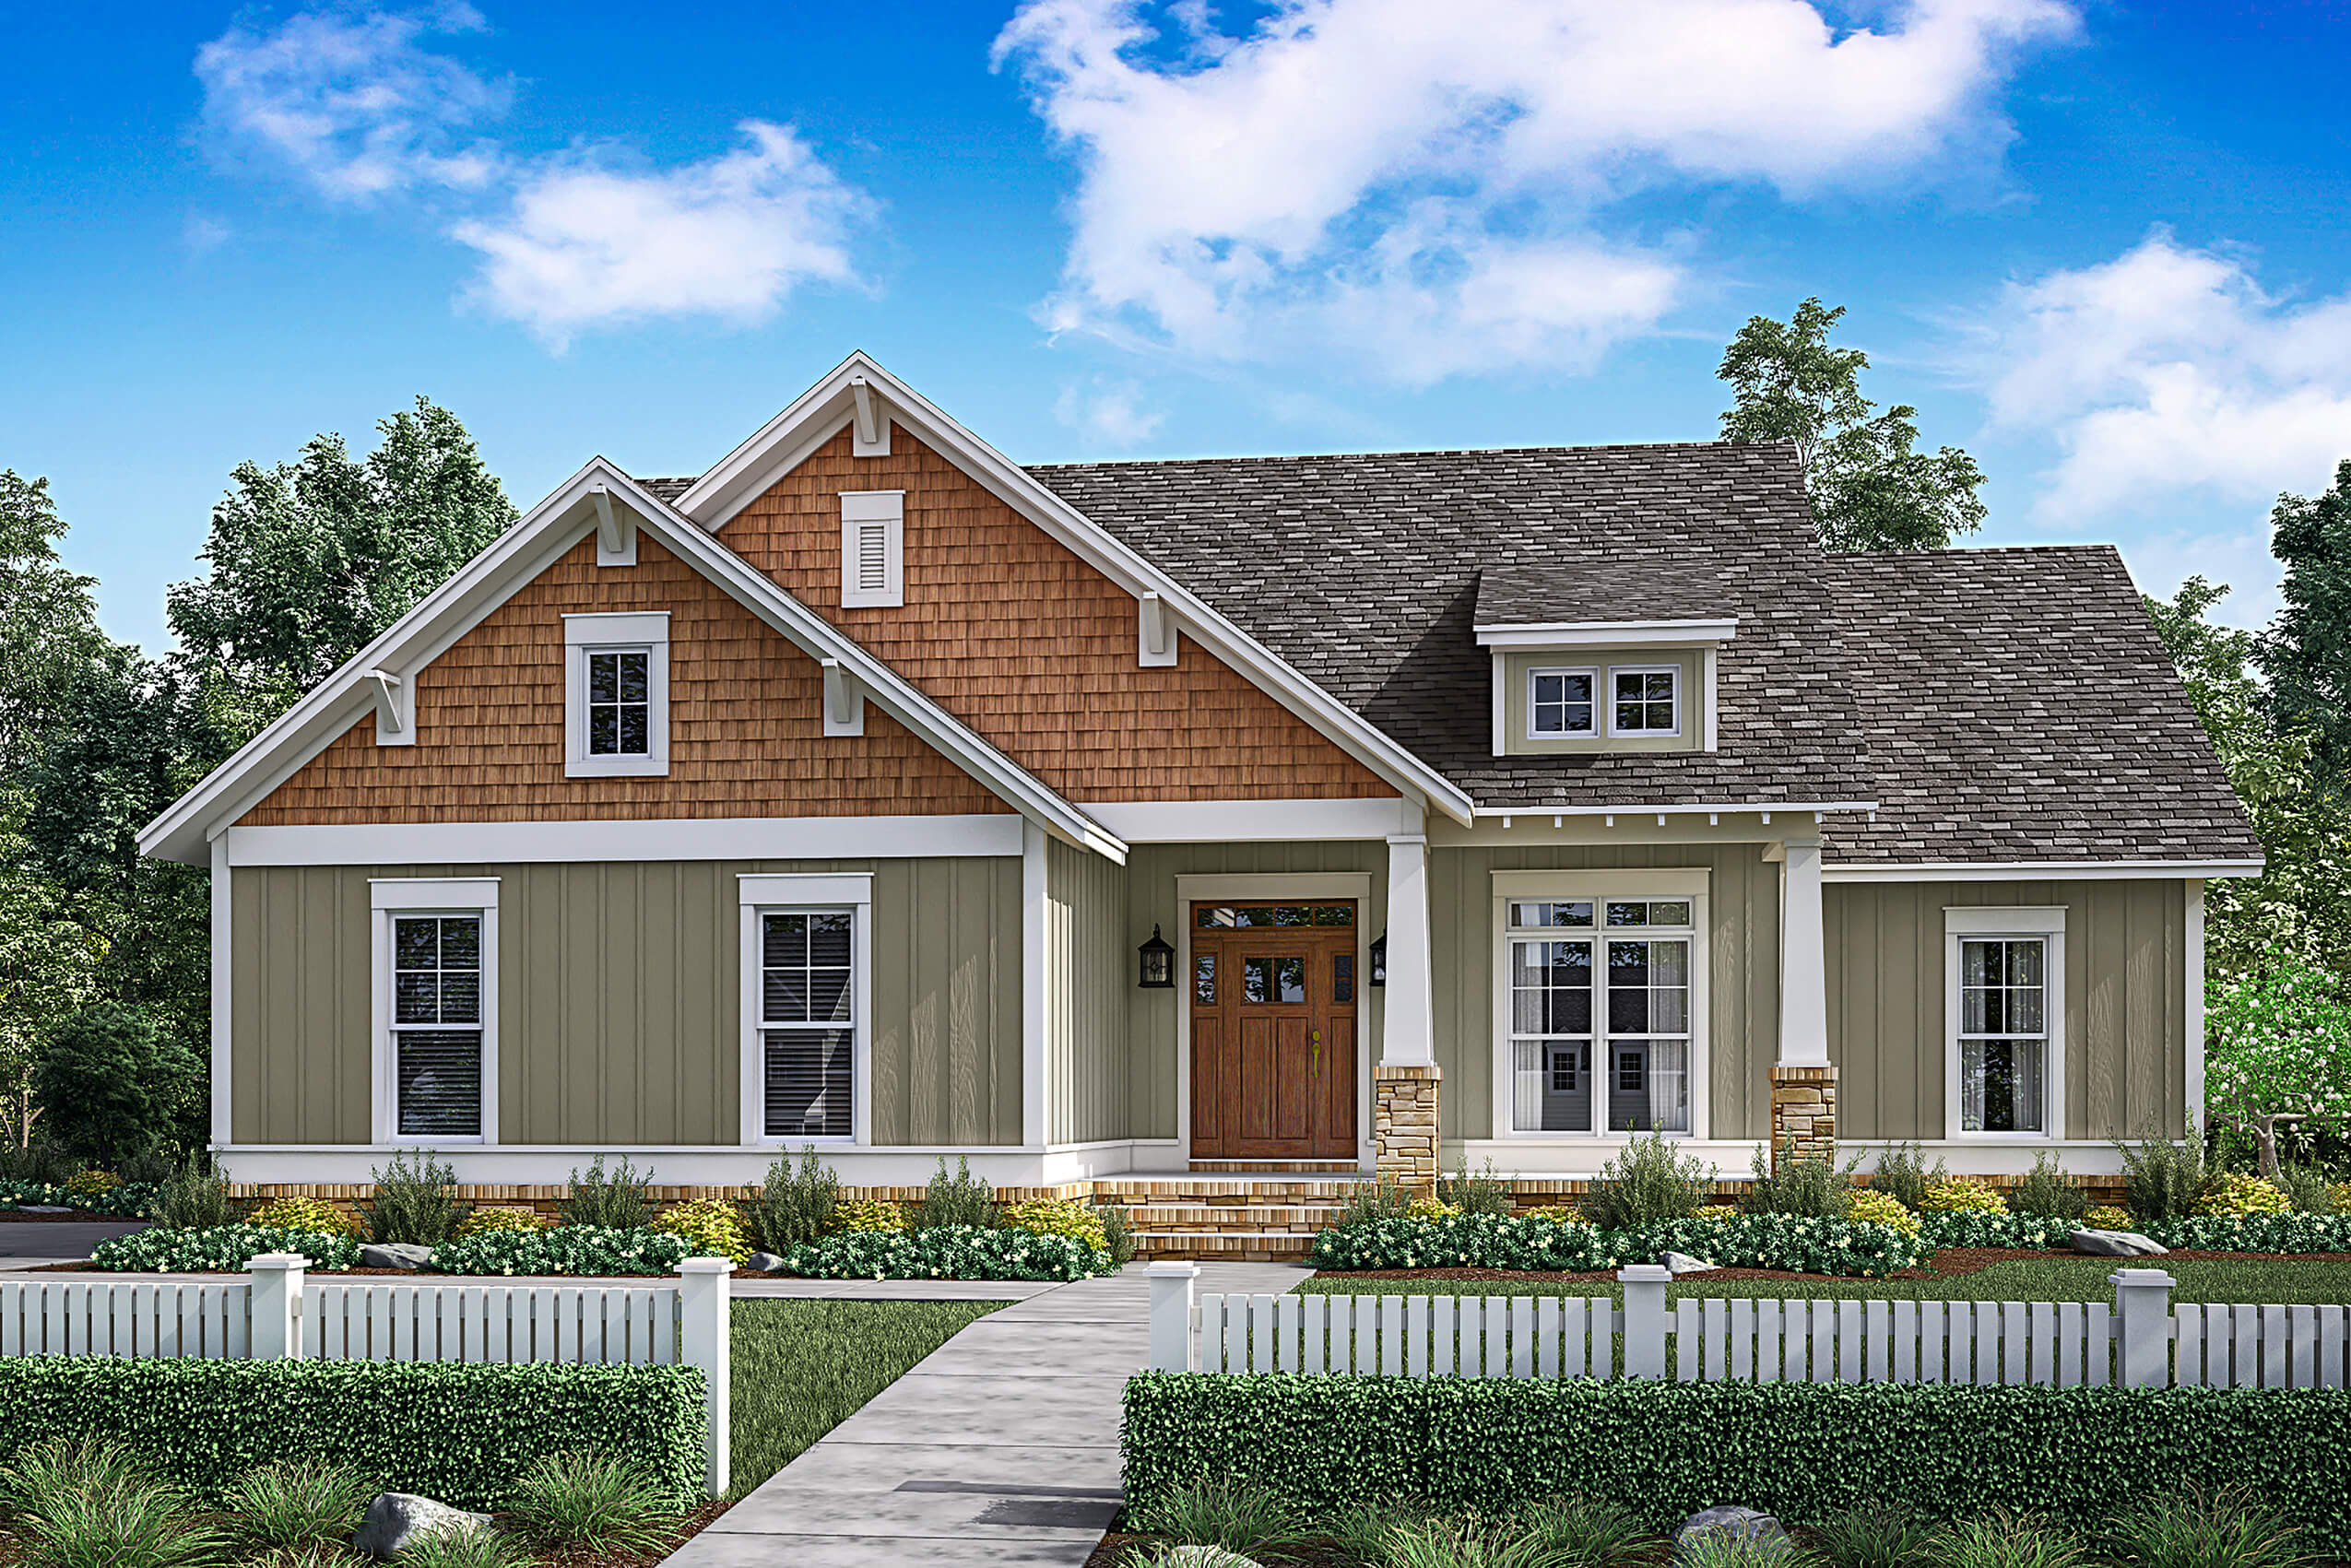 3 Bedrm, 1657 Sq Ft Traditional House Plan #142-1176